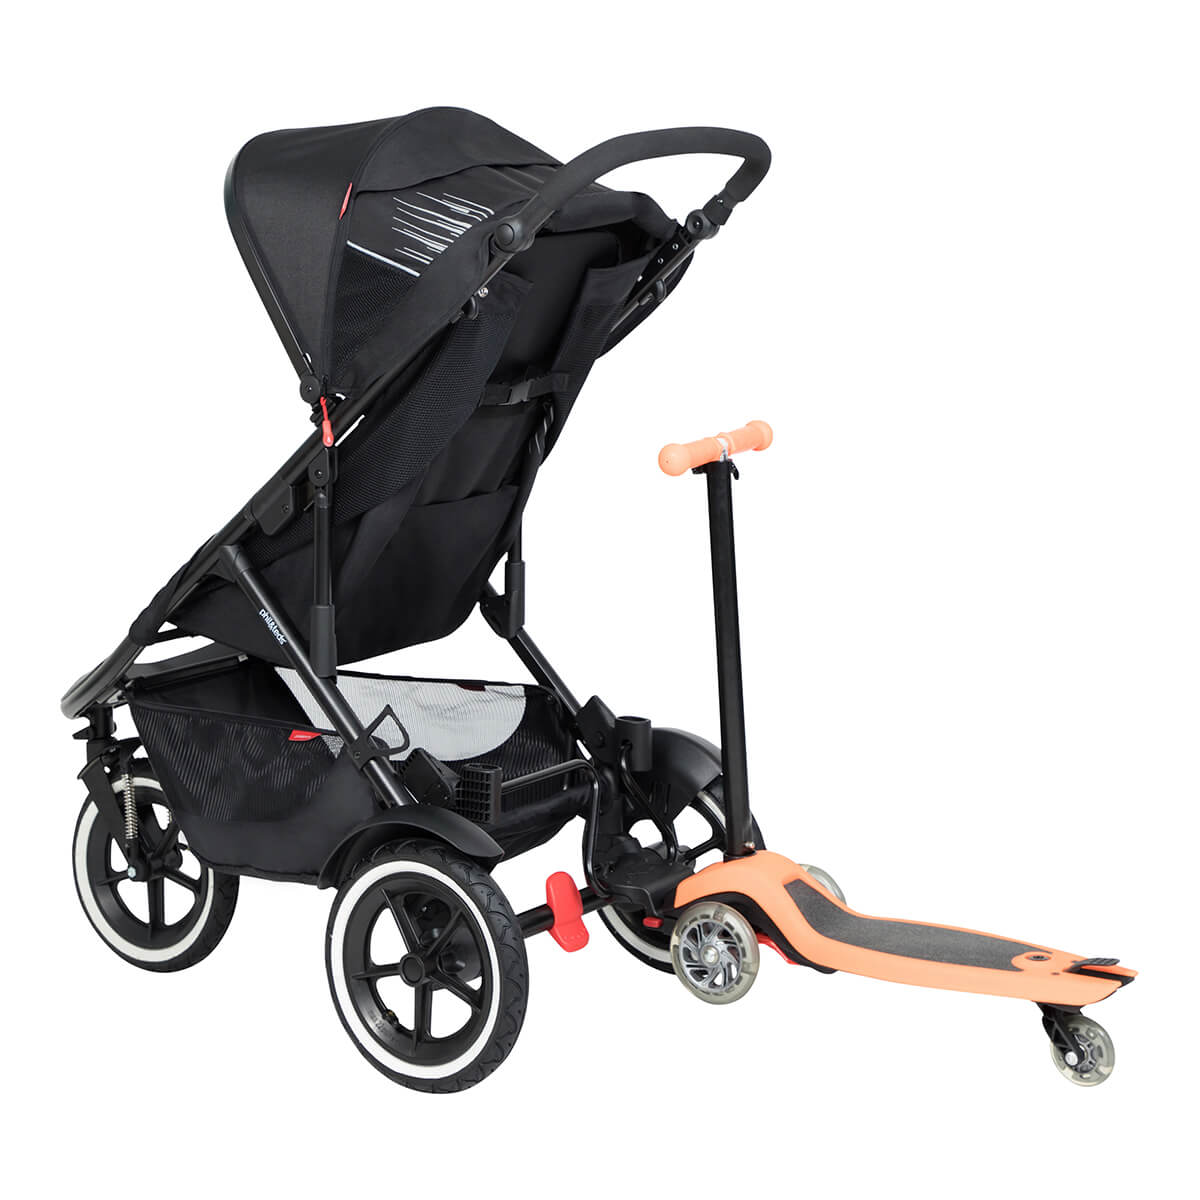 https://cdn.accentuate.io/4417276117026/19437753860274/philteds-sport-buggy-with-freerider-stroller-board-in-rear-v1626482705950.jpg?1200x1200